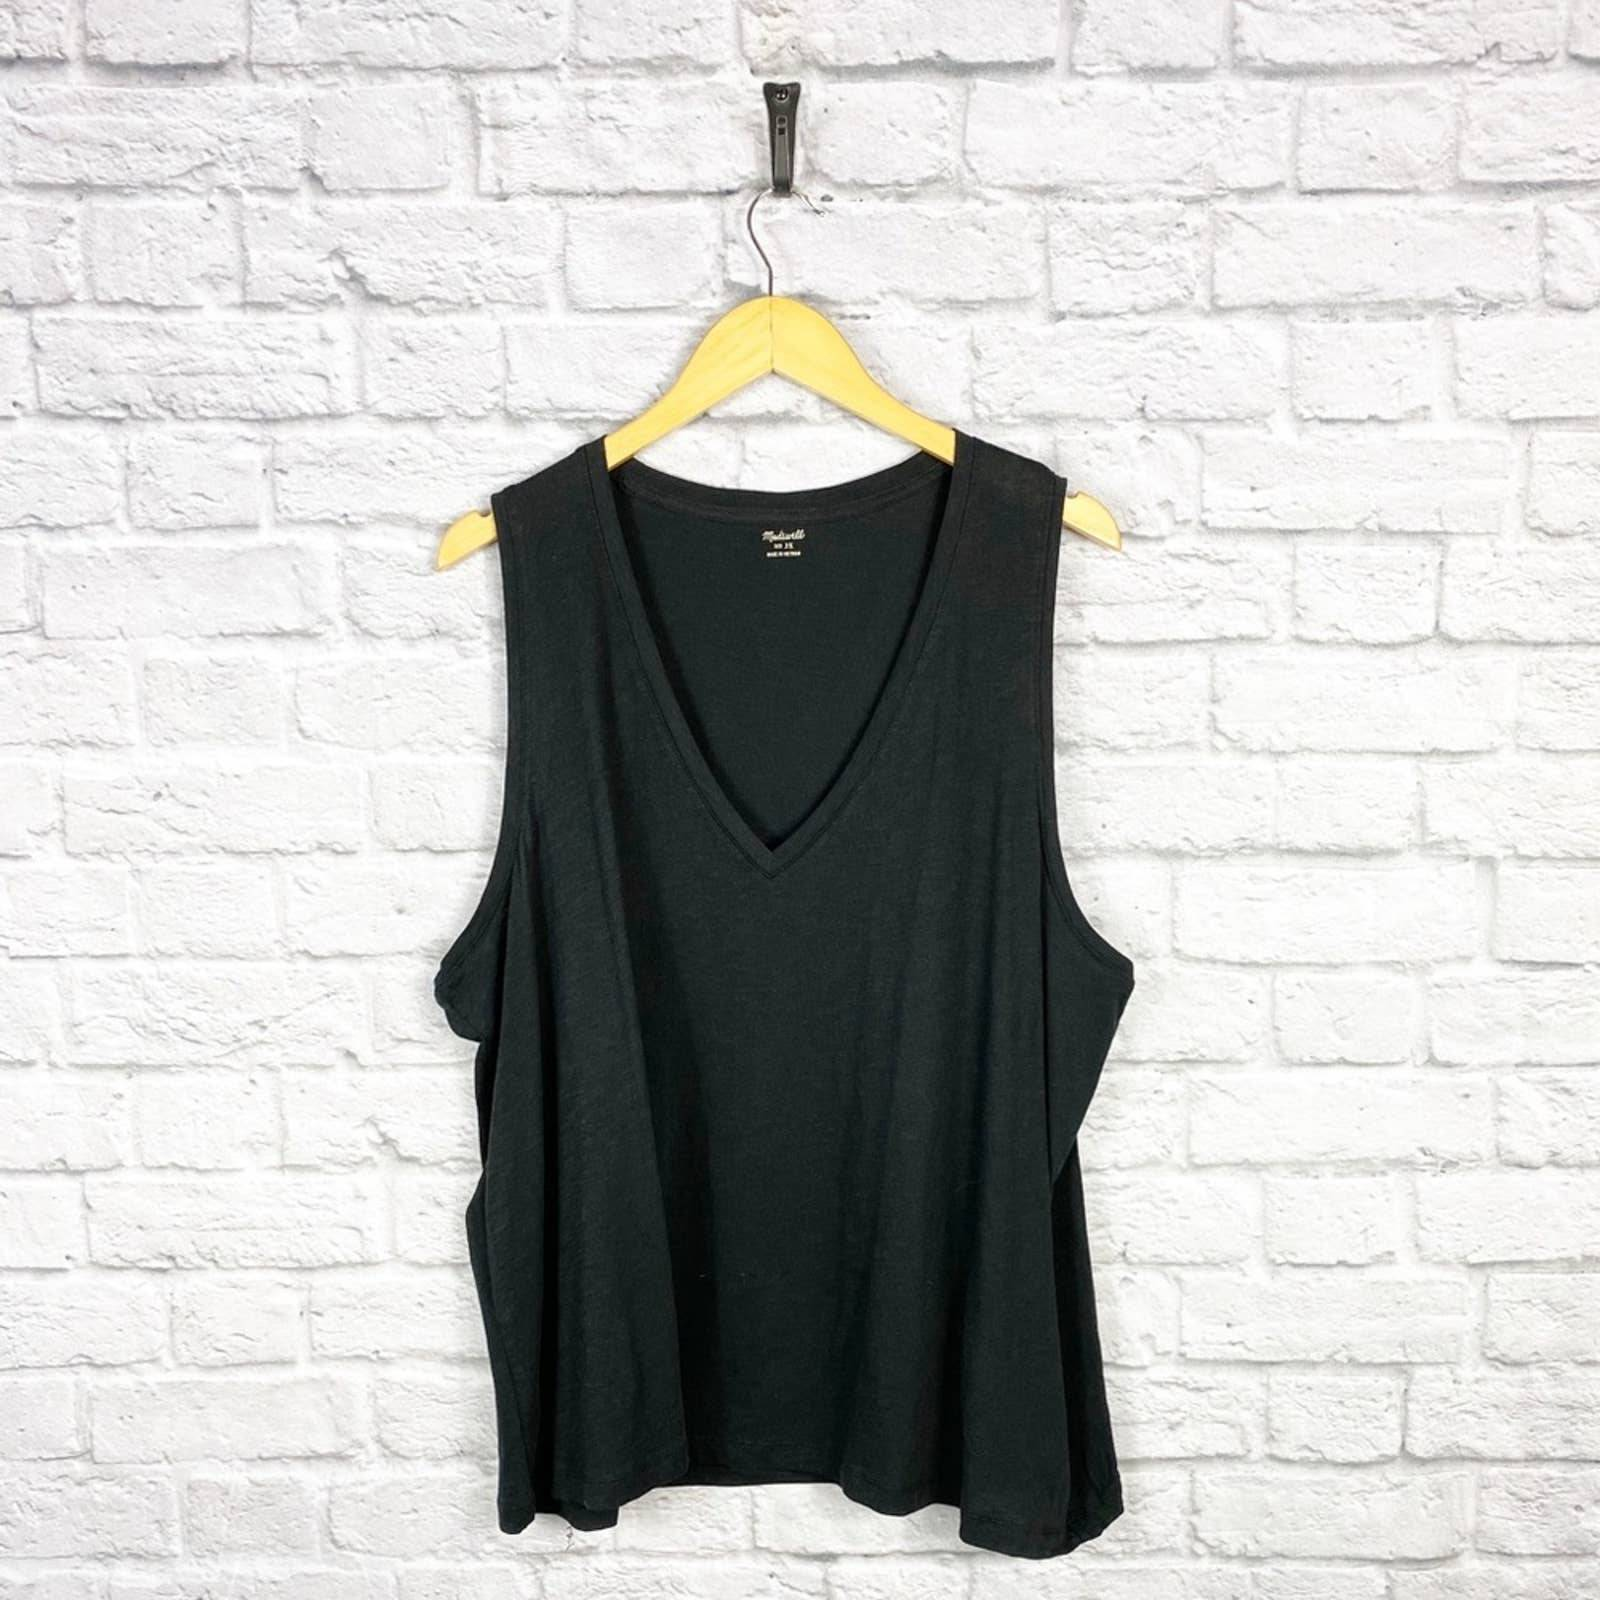 Madewell Cotton V-Neck Tank Top in Black